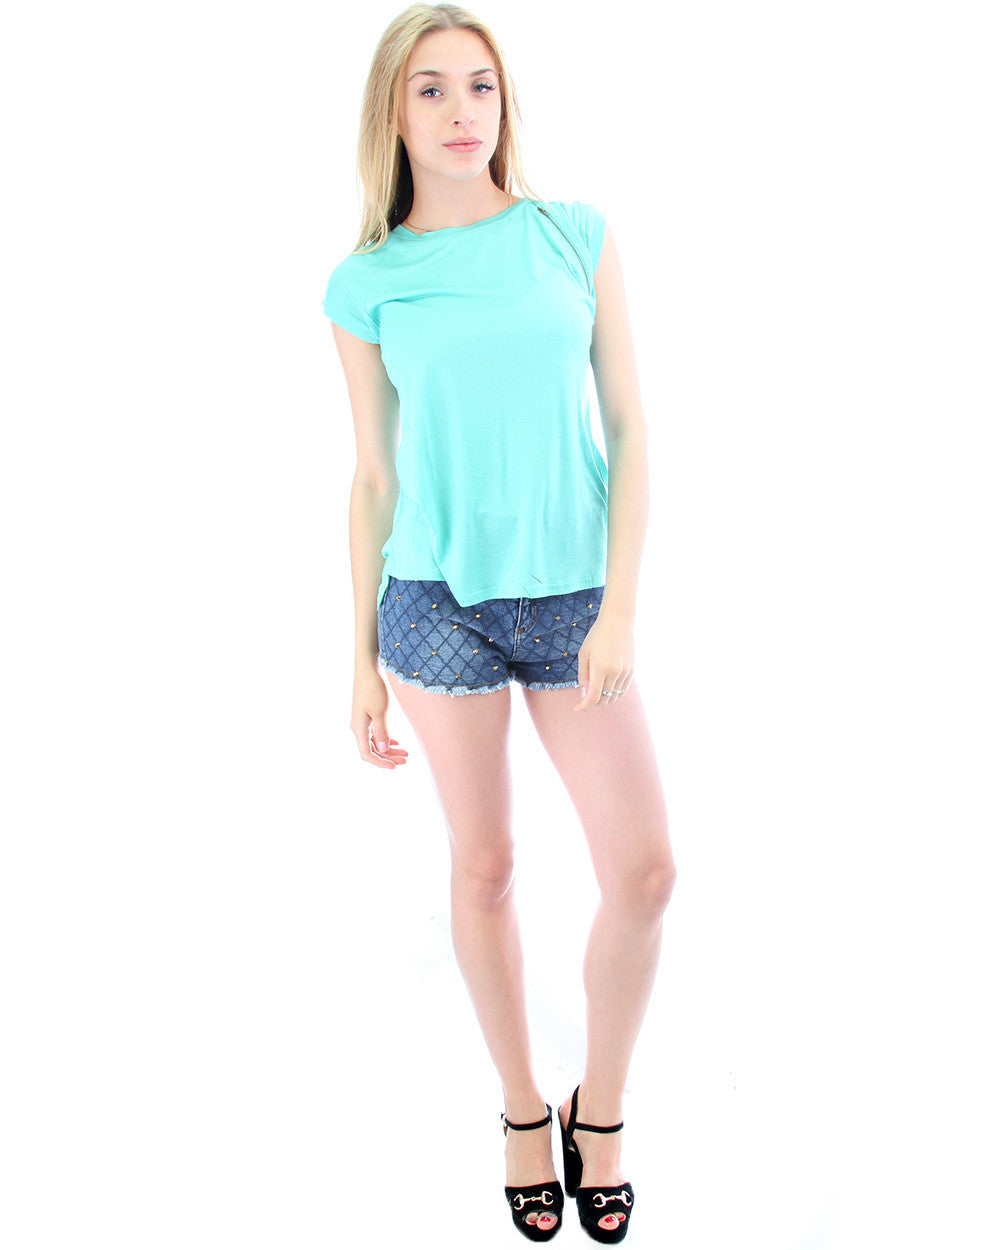 Loose Fitting Tee with Zipper in Spearmint